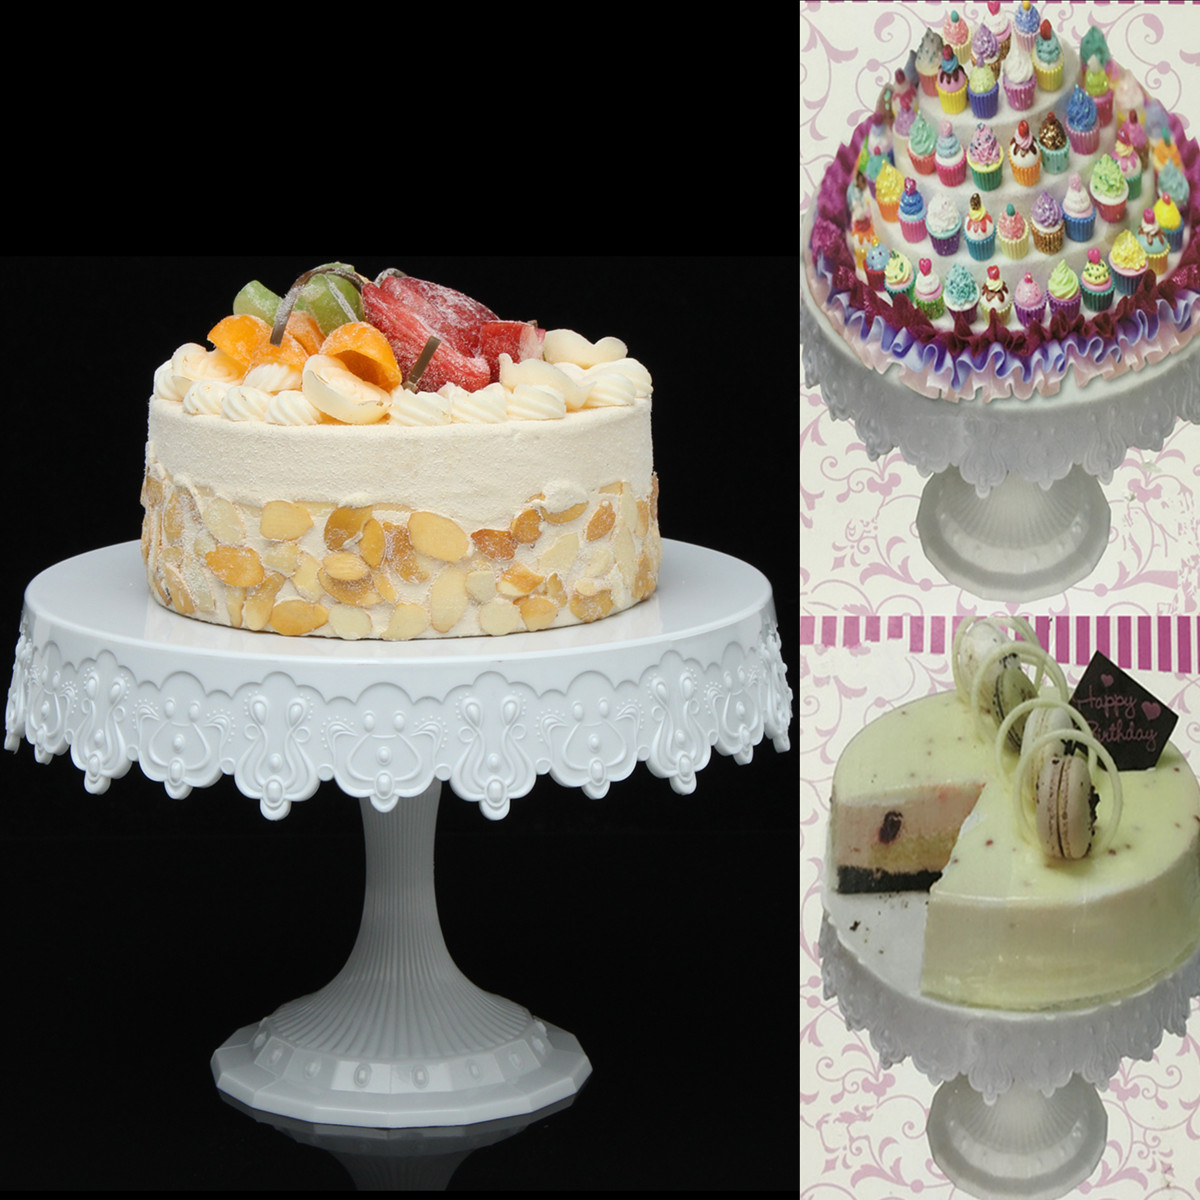 Plastic Cake Stand Round Cake Shelf Rack Holder For Wedding Party Cake Dessert Serving Tools Decoration European Style (Size: 222*150mm)